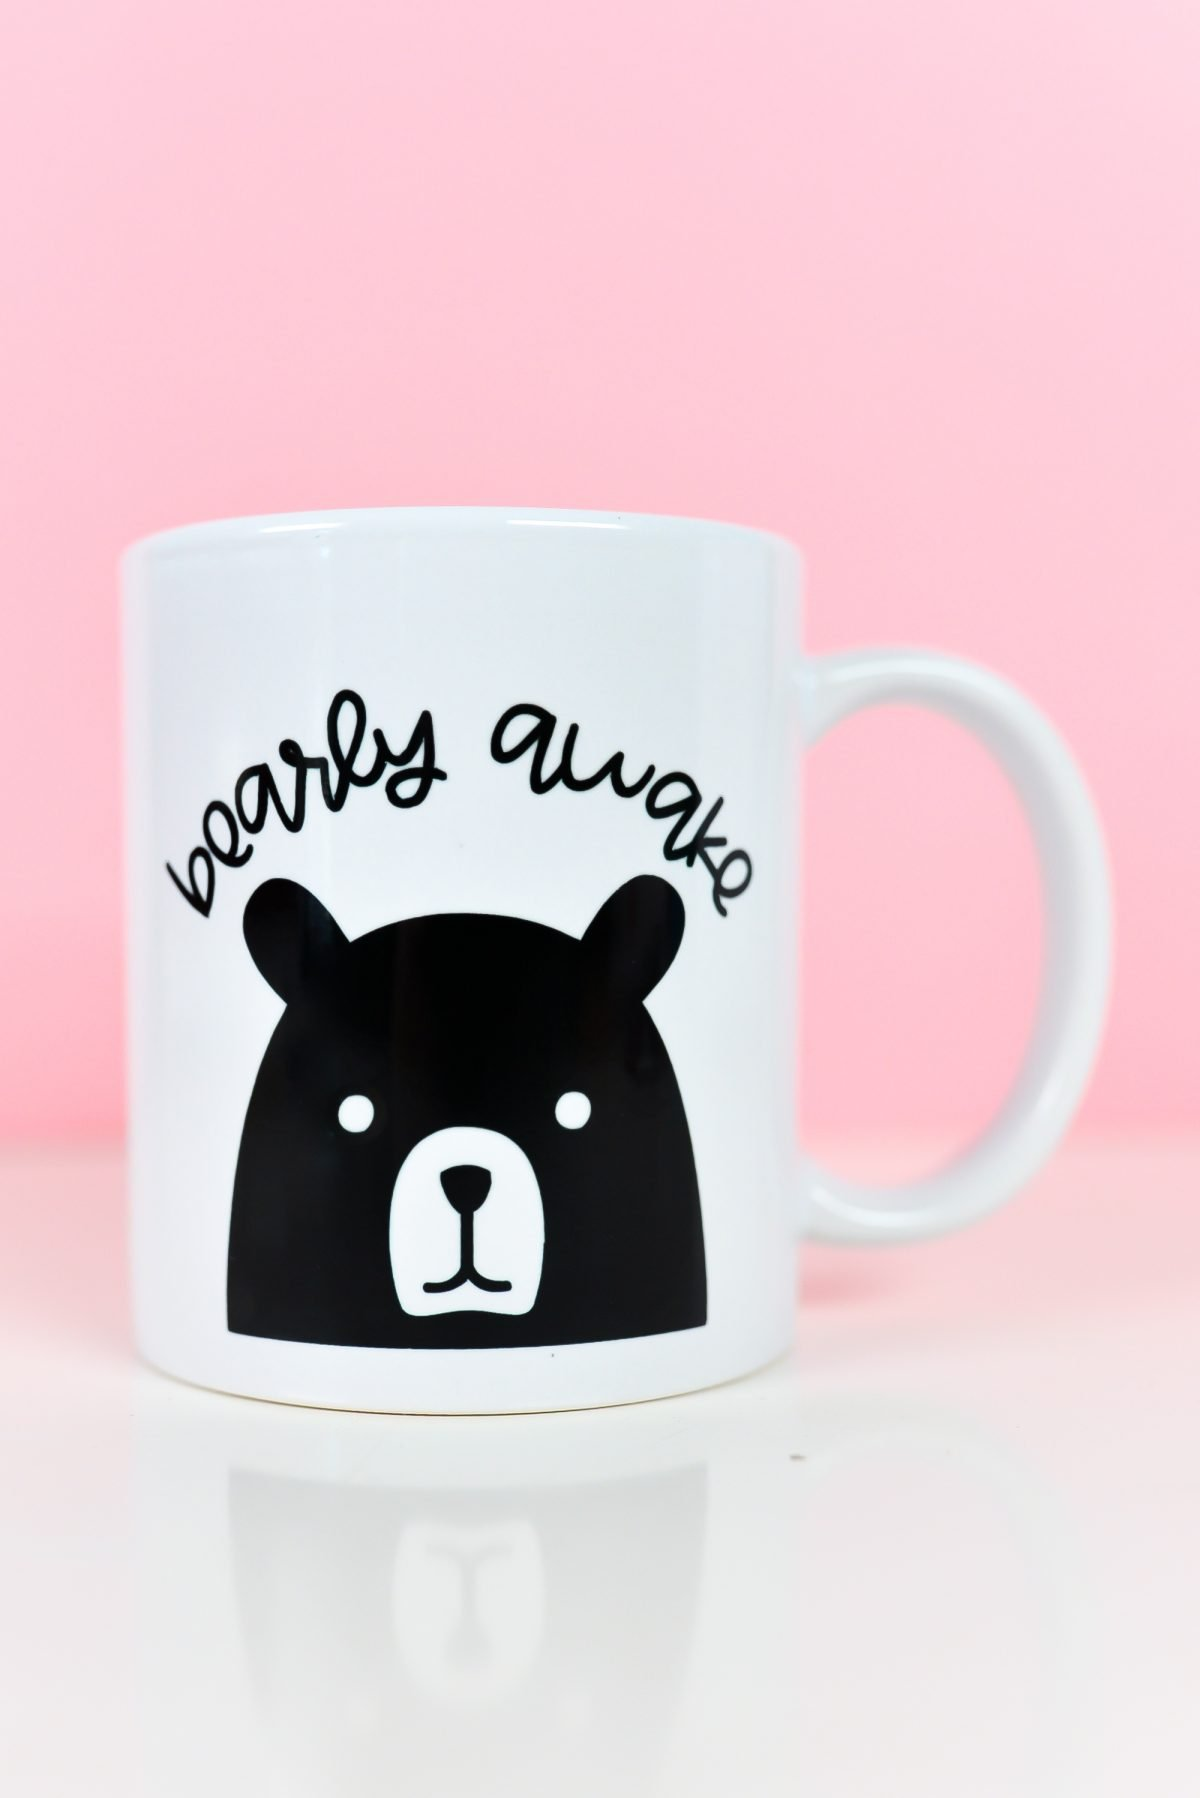 Bearly Awake SVG on mug with pink background